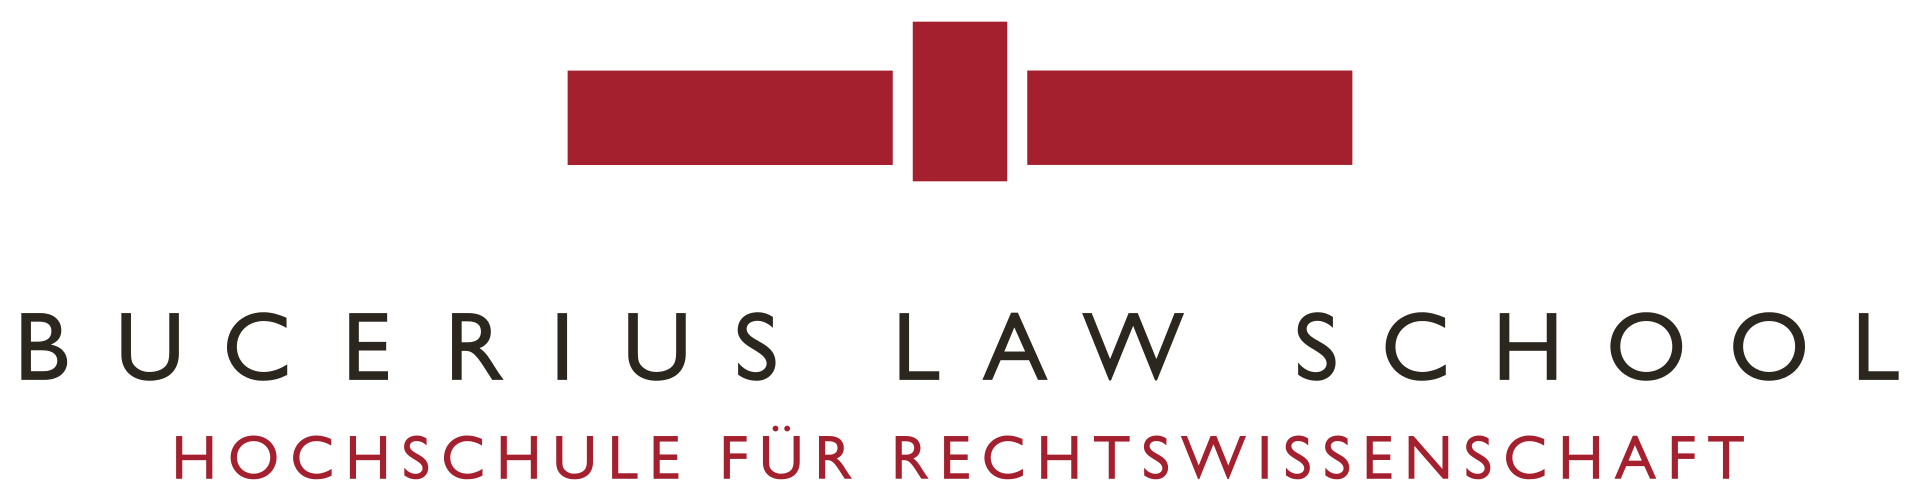 Bucerius Law School Logo